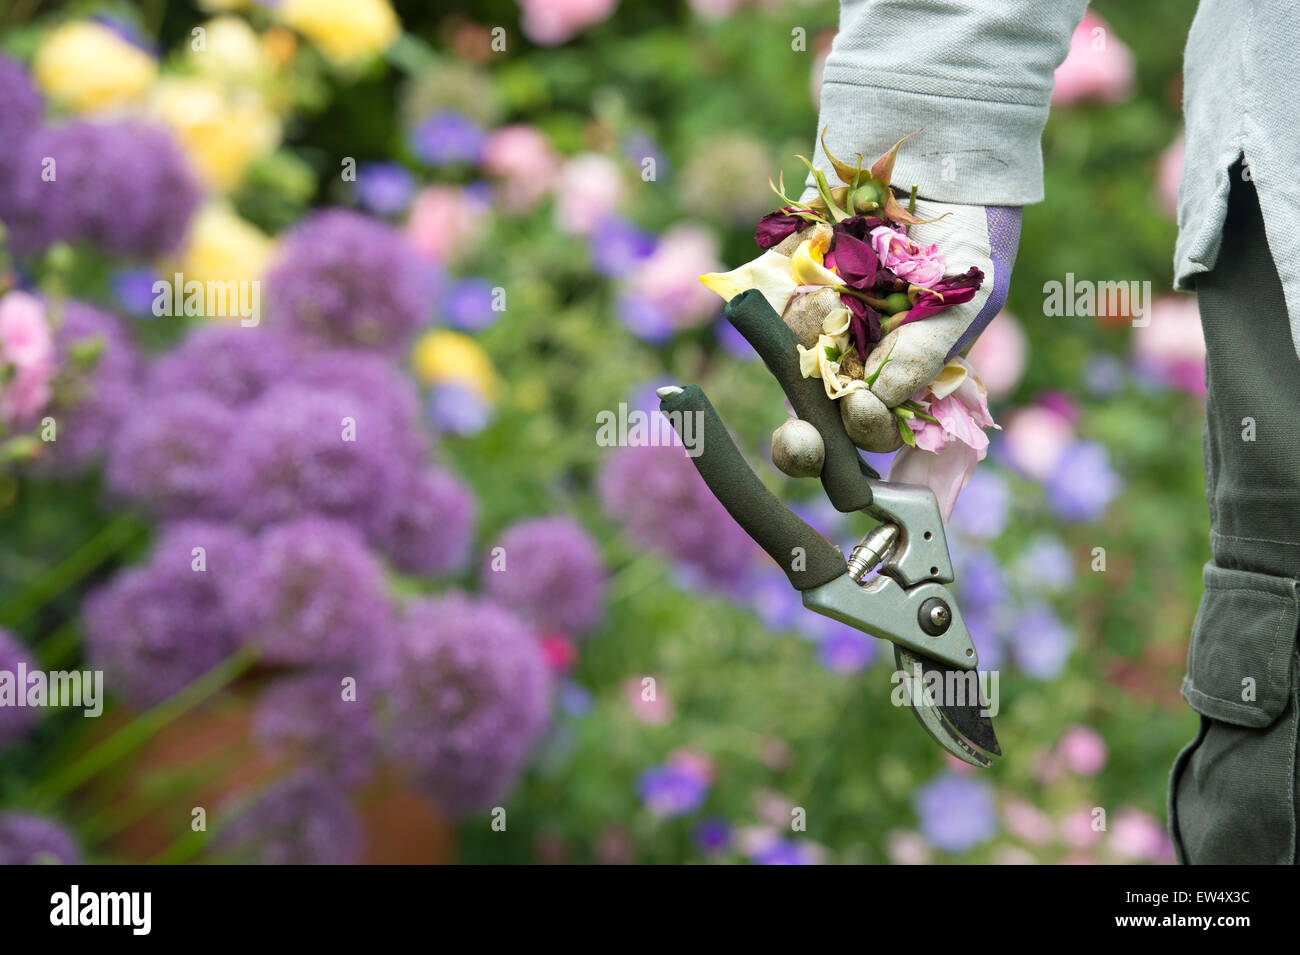 Gardener wearing gardening gloves carrying deadheaded roses and secateurs in a garden - Stock Image